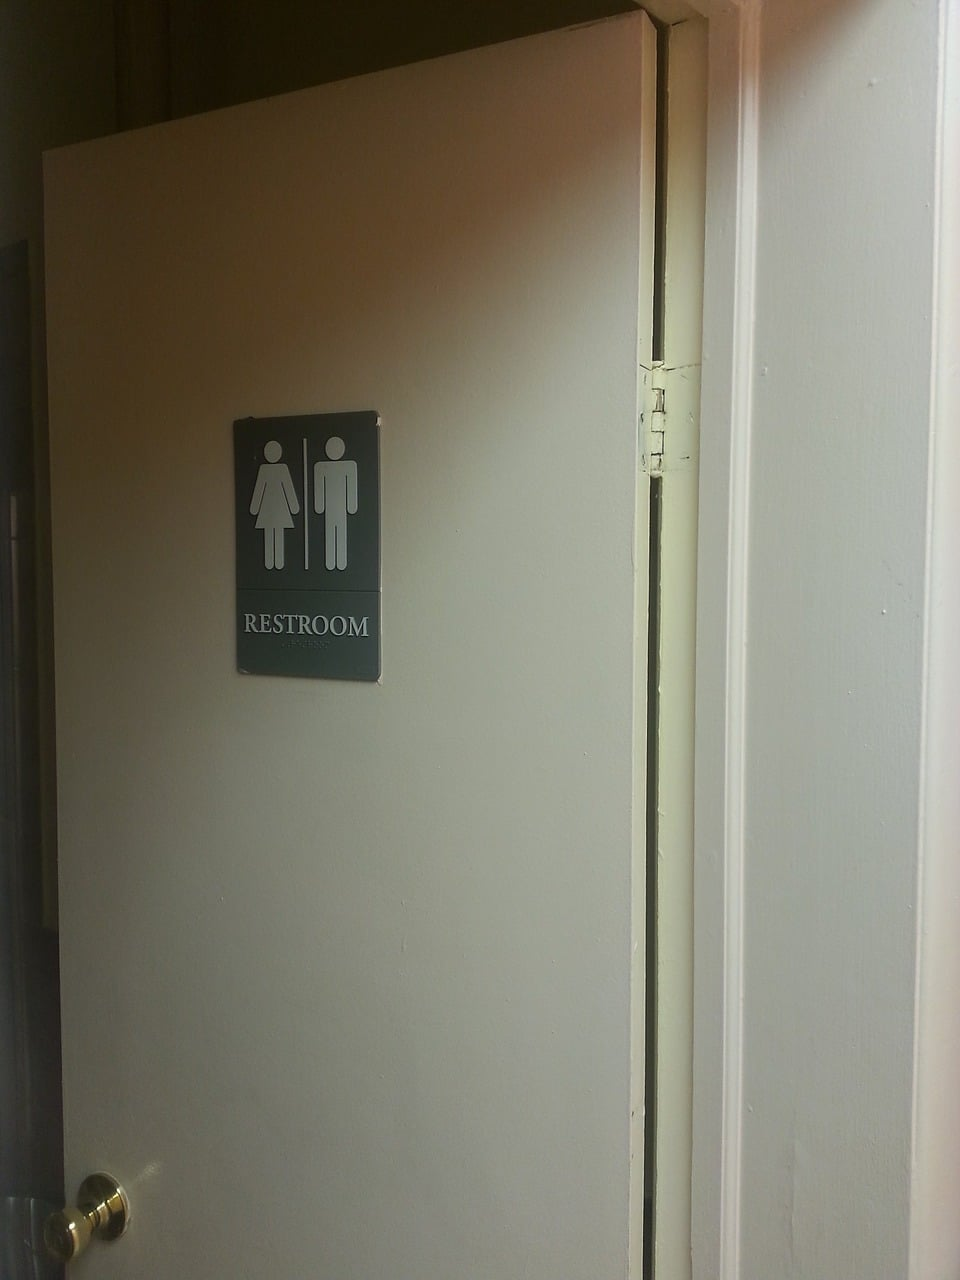 all-gender restrooms